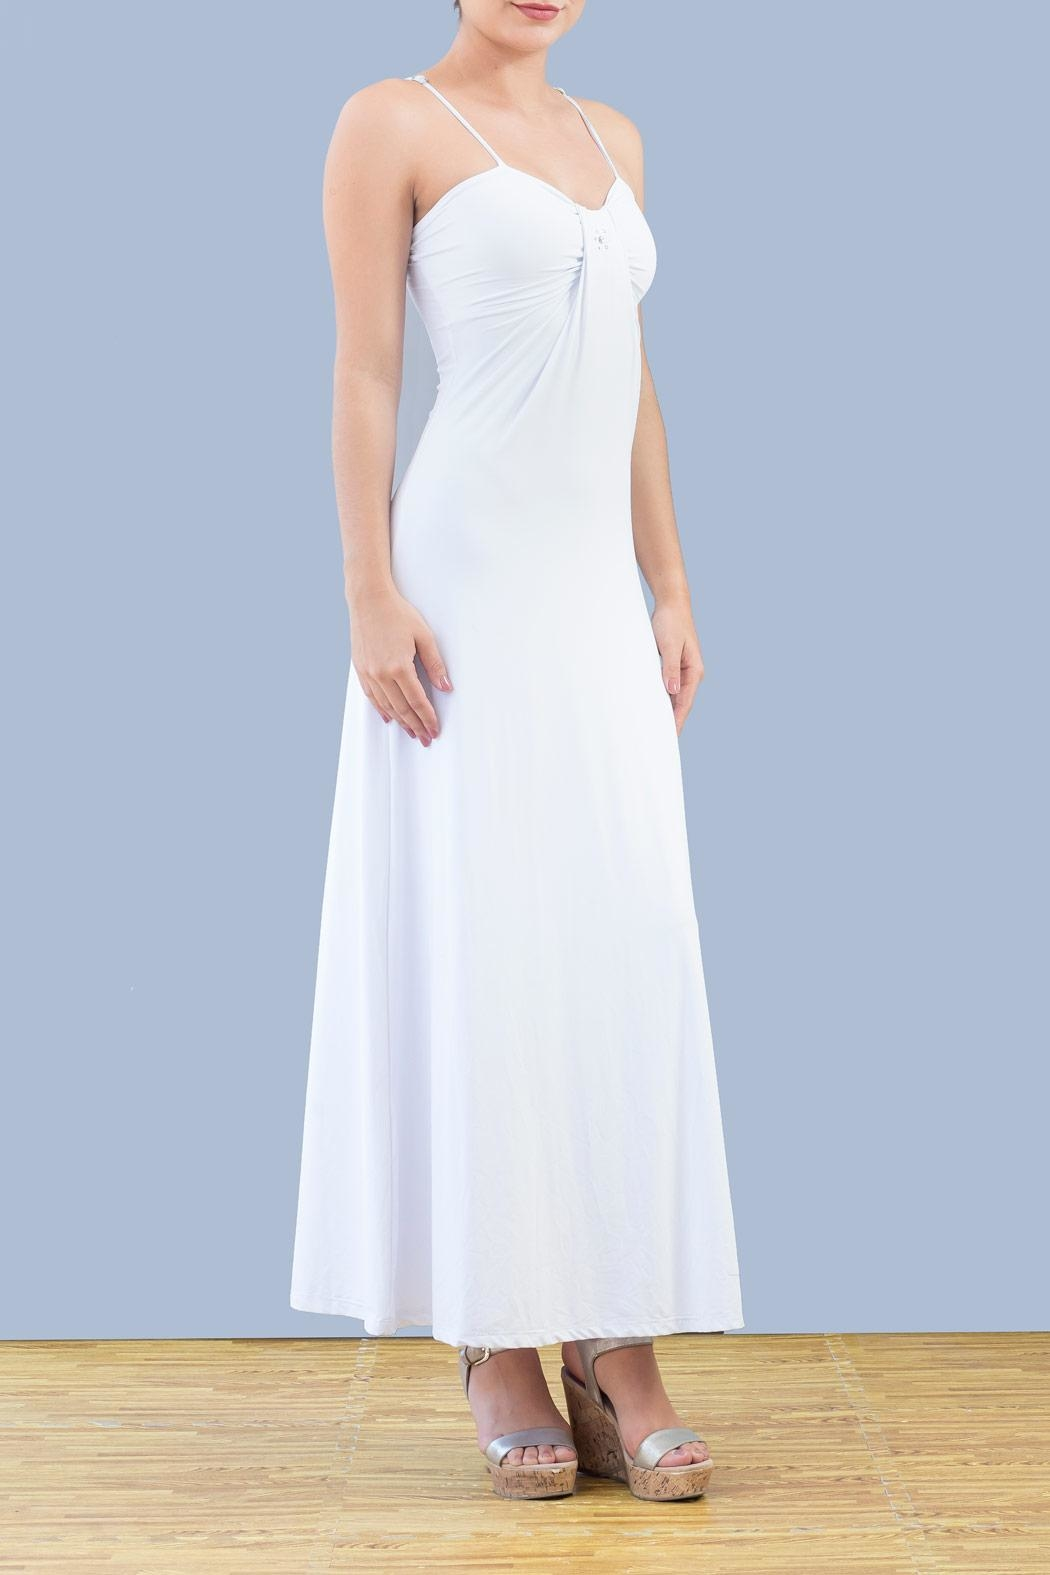 Myskova Swarovski Sophia Long Dress - Main Image